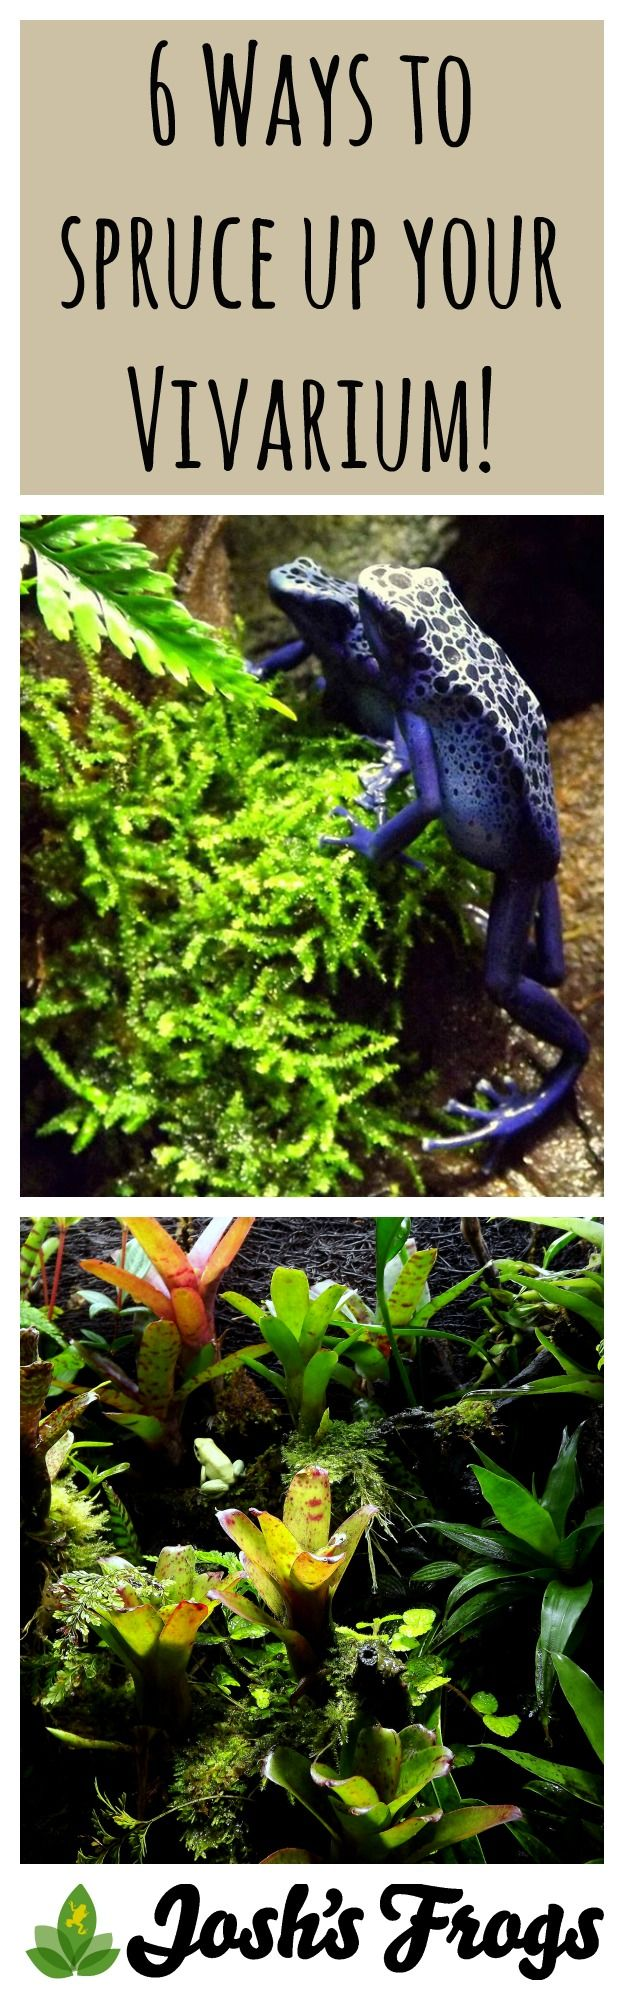 6 Ways to Spruce up your Dart frog Vivarium!                                                                                                                                                                                 More